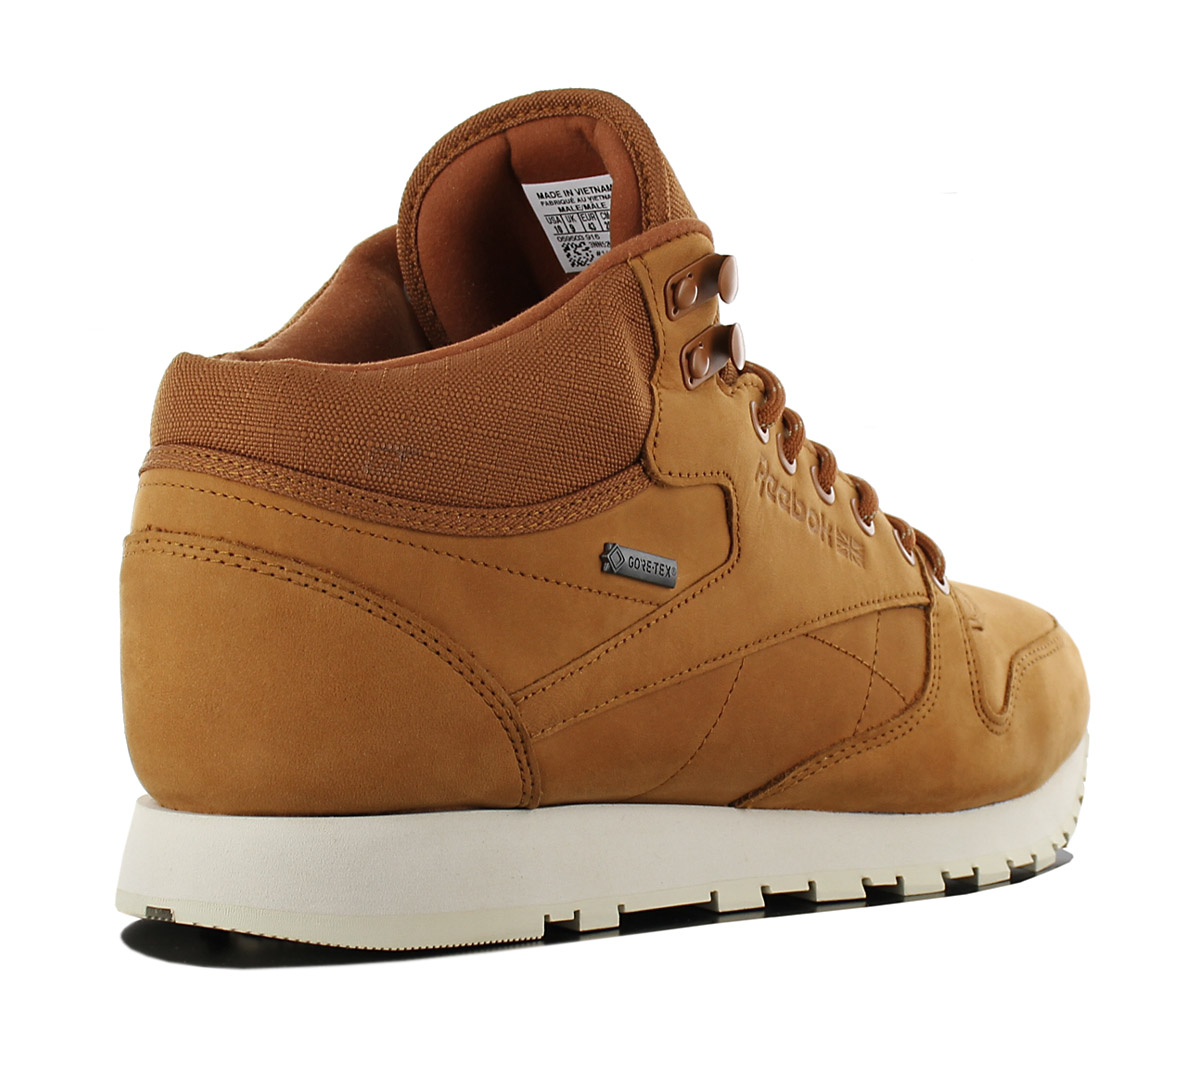 3bbcb5a4f0e Reebok Classic Leather mid Gore-Tex Men s Sneakers Boots Shoes ...